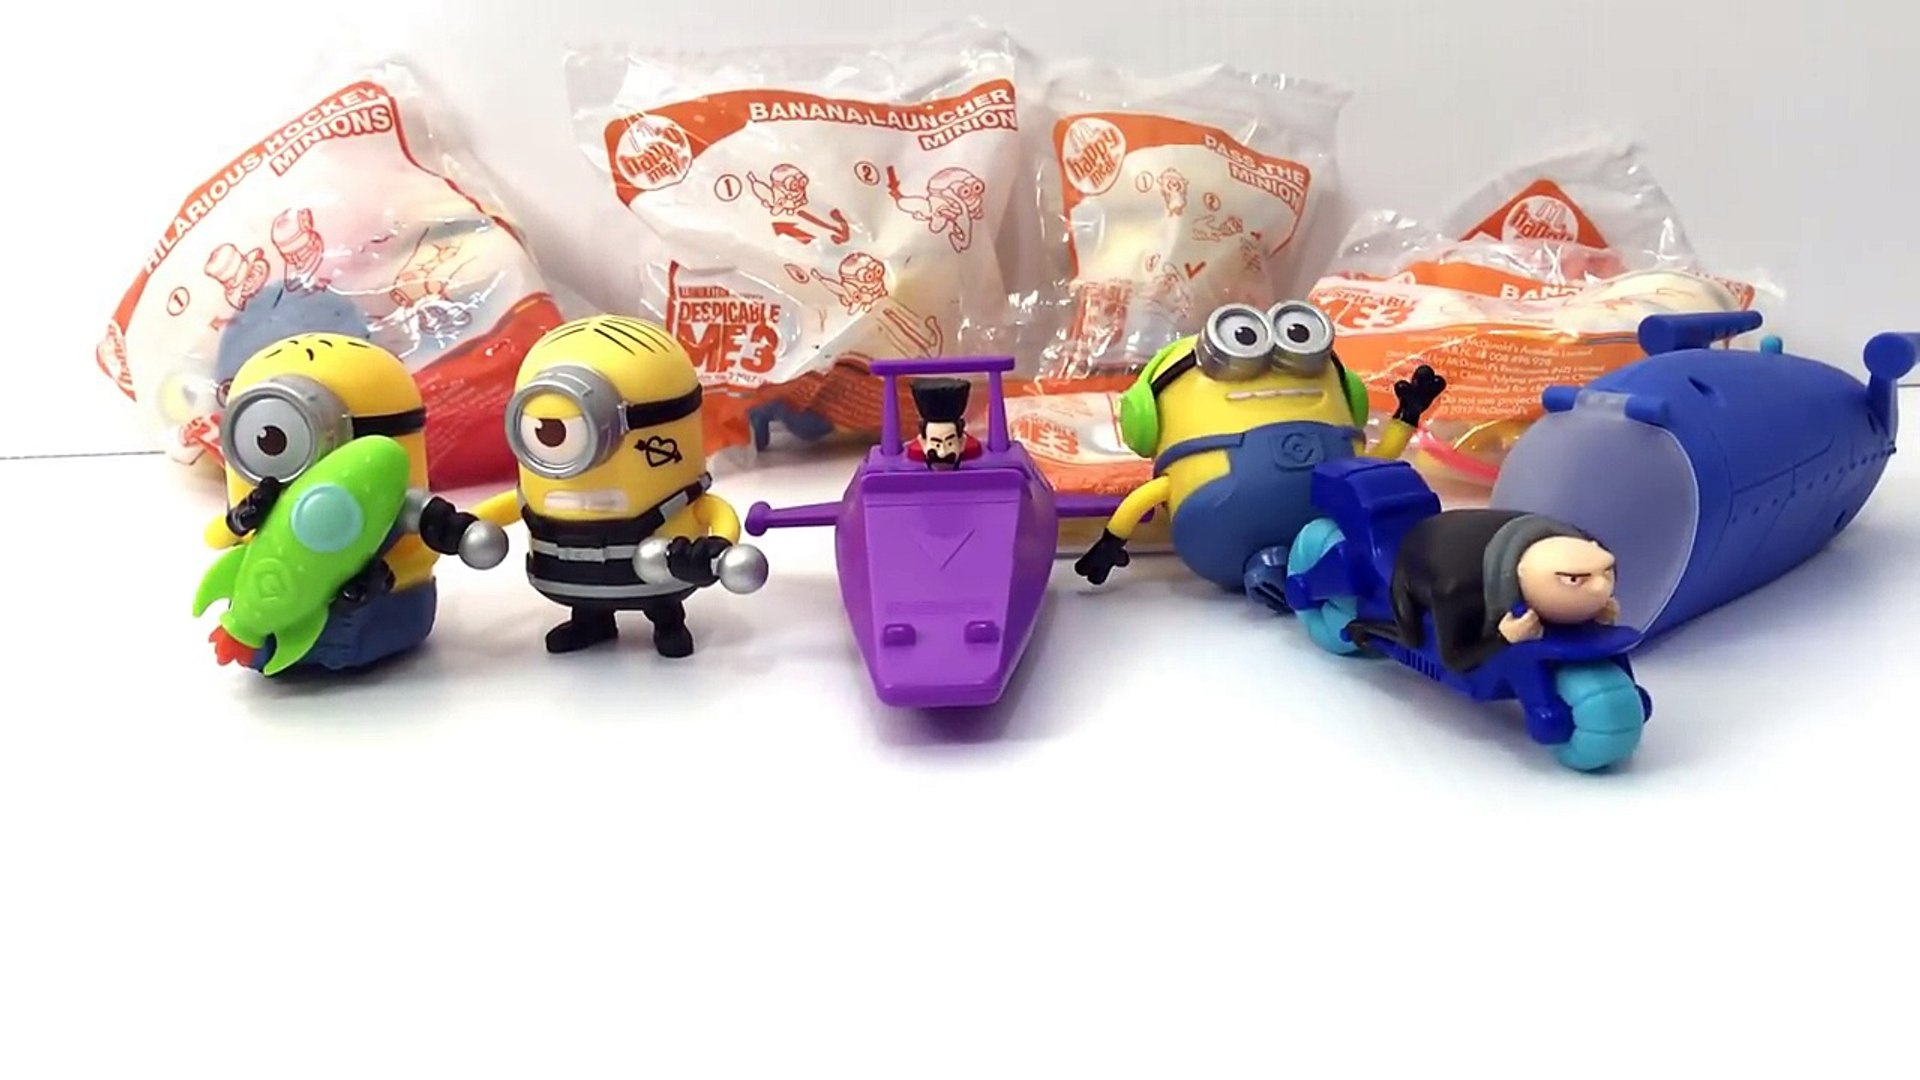 2017 MCDONALDS USA SET OF 12 DESPICABLE ME 3 HAPPY MEAL MINIONS MOVIE TOYS UNBOXING & REVIEW